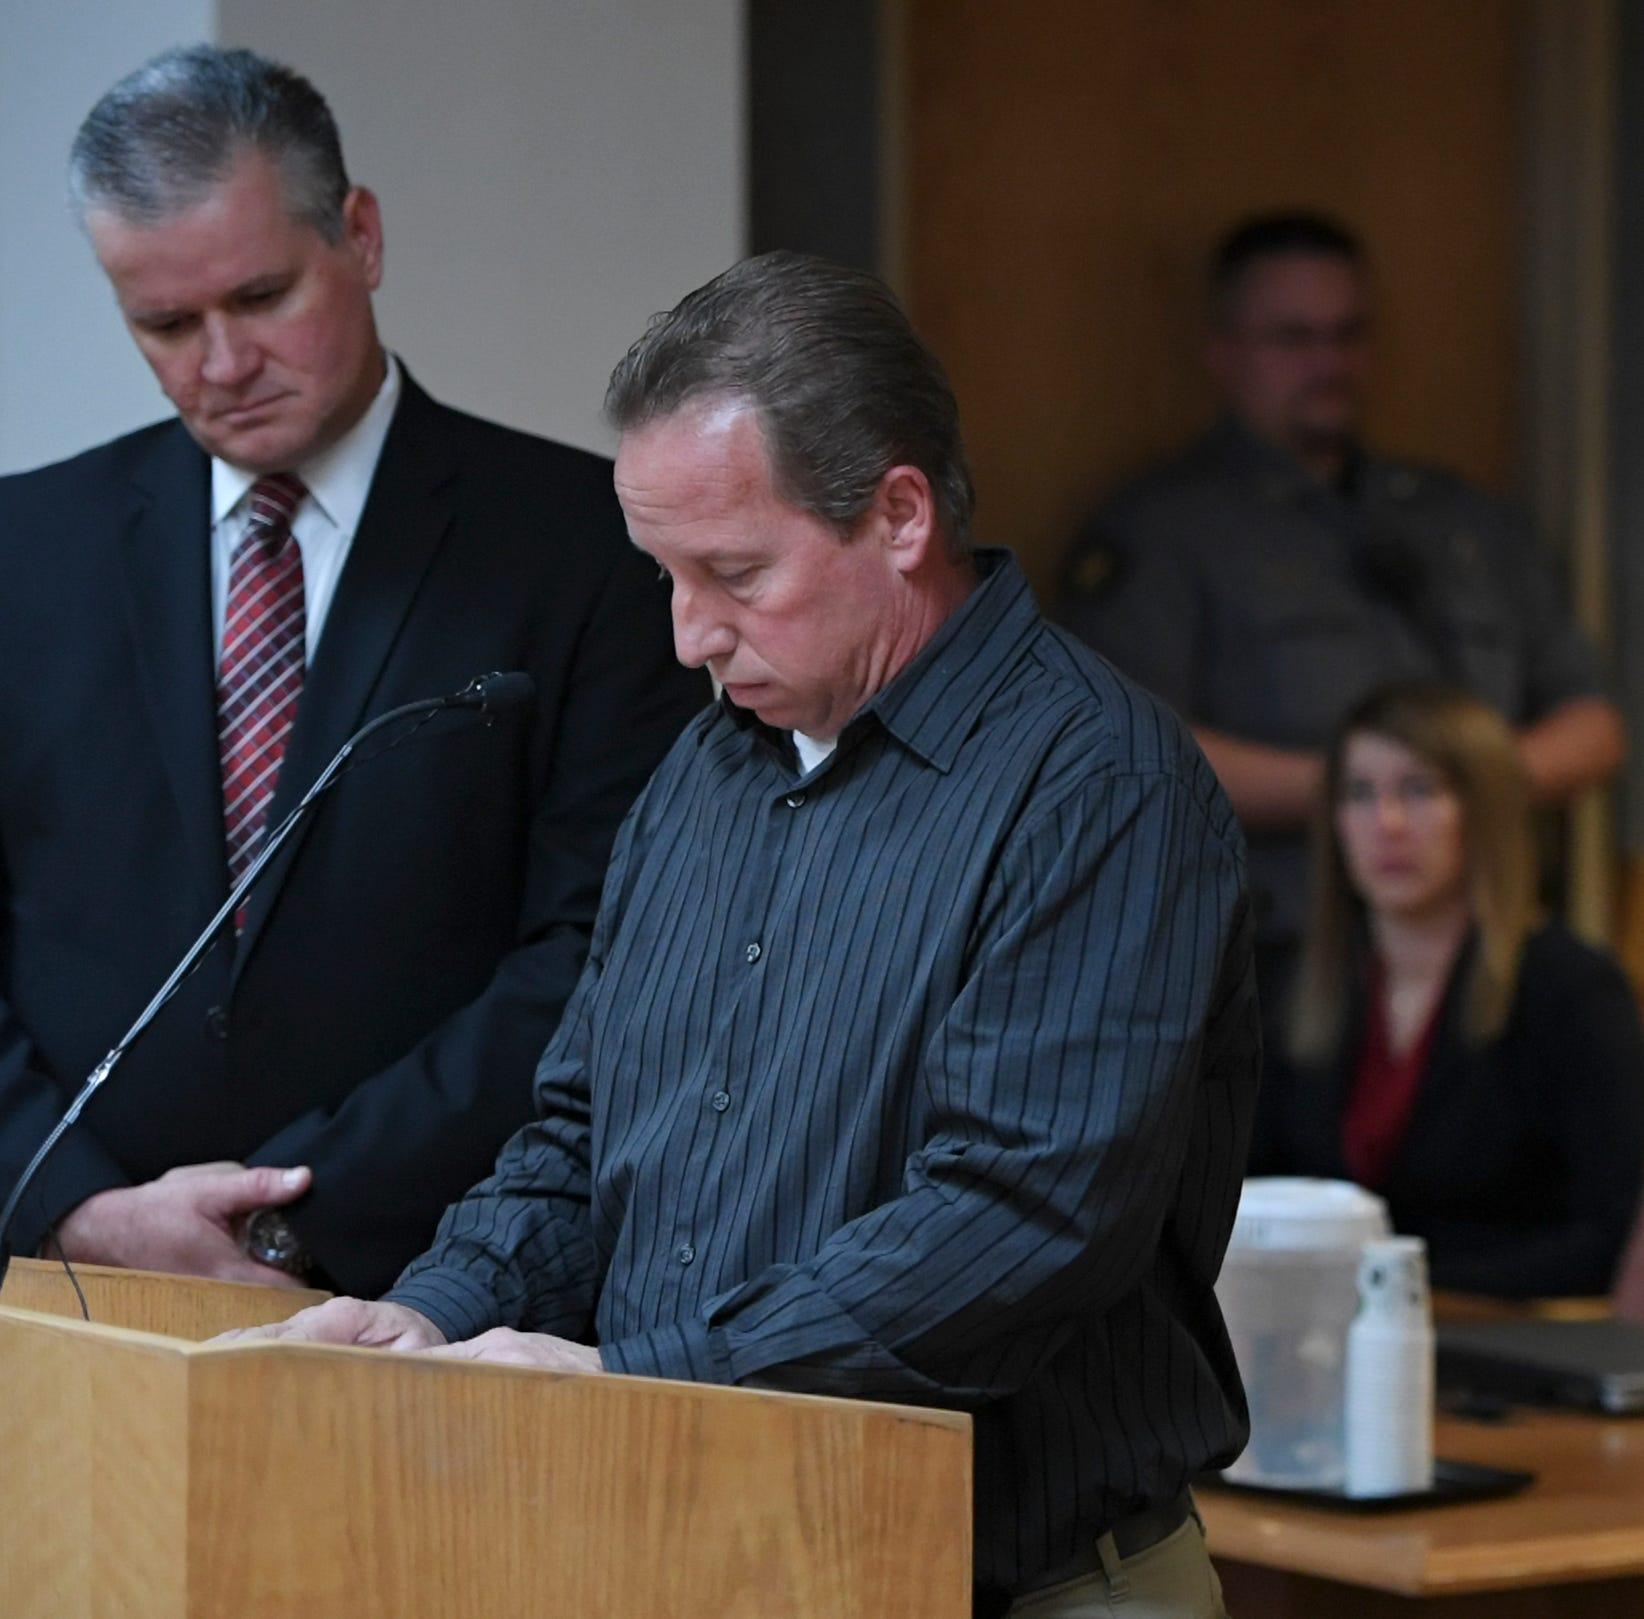 Colorado District Attorney: Chris Watts' recent murder confession mostly 'truthful, credible'